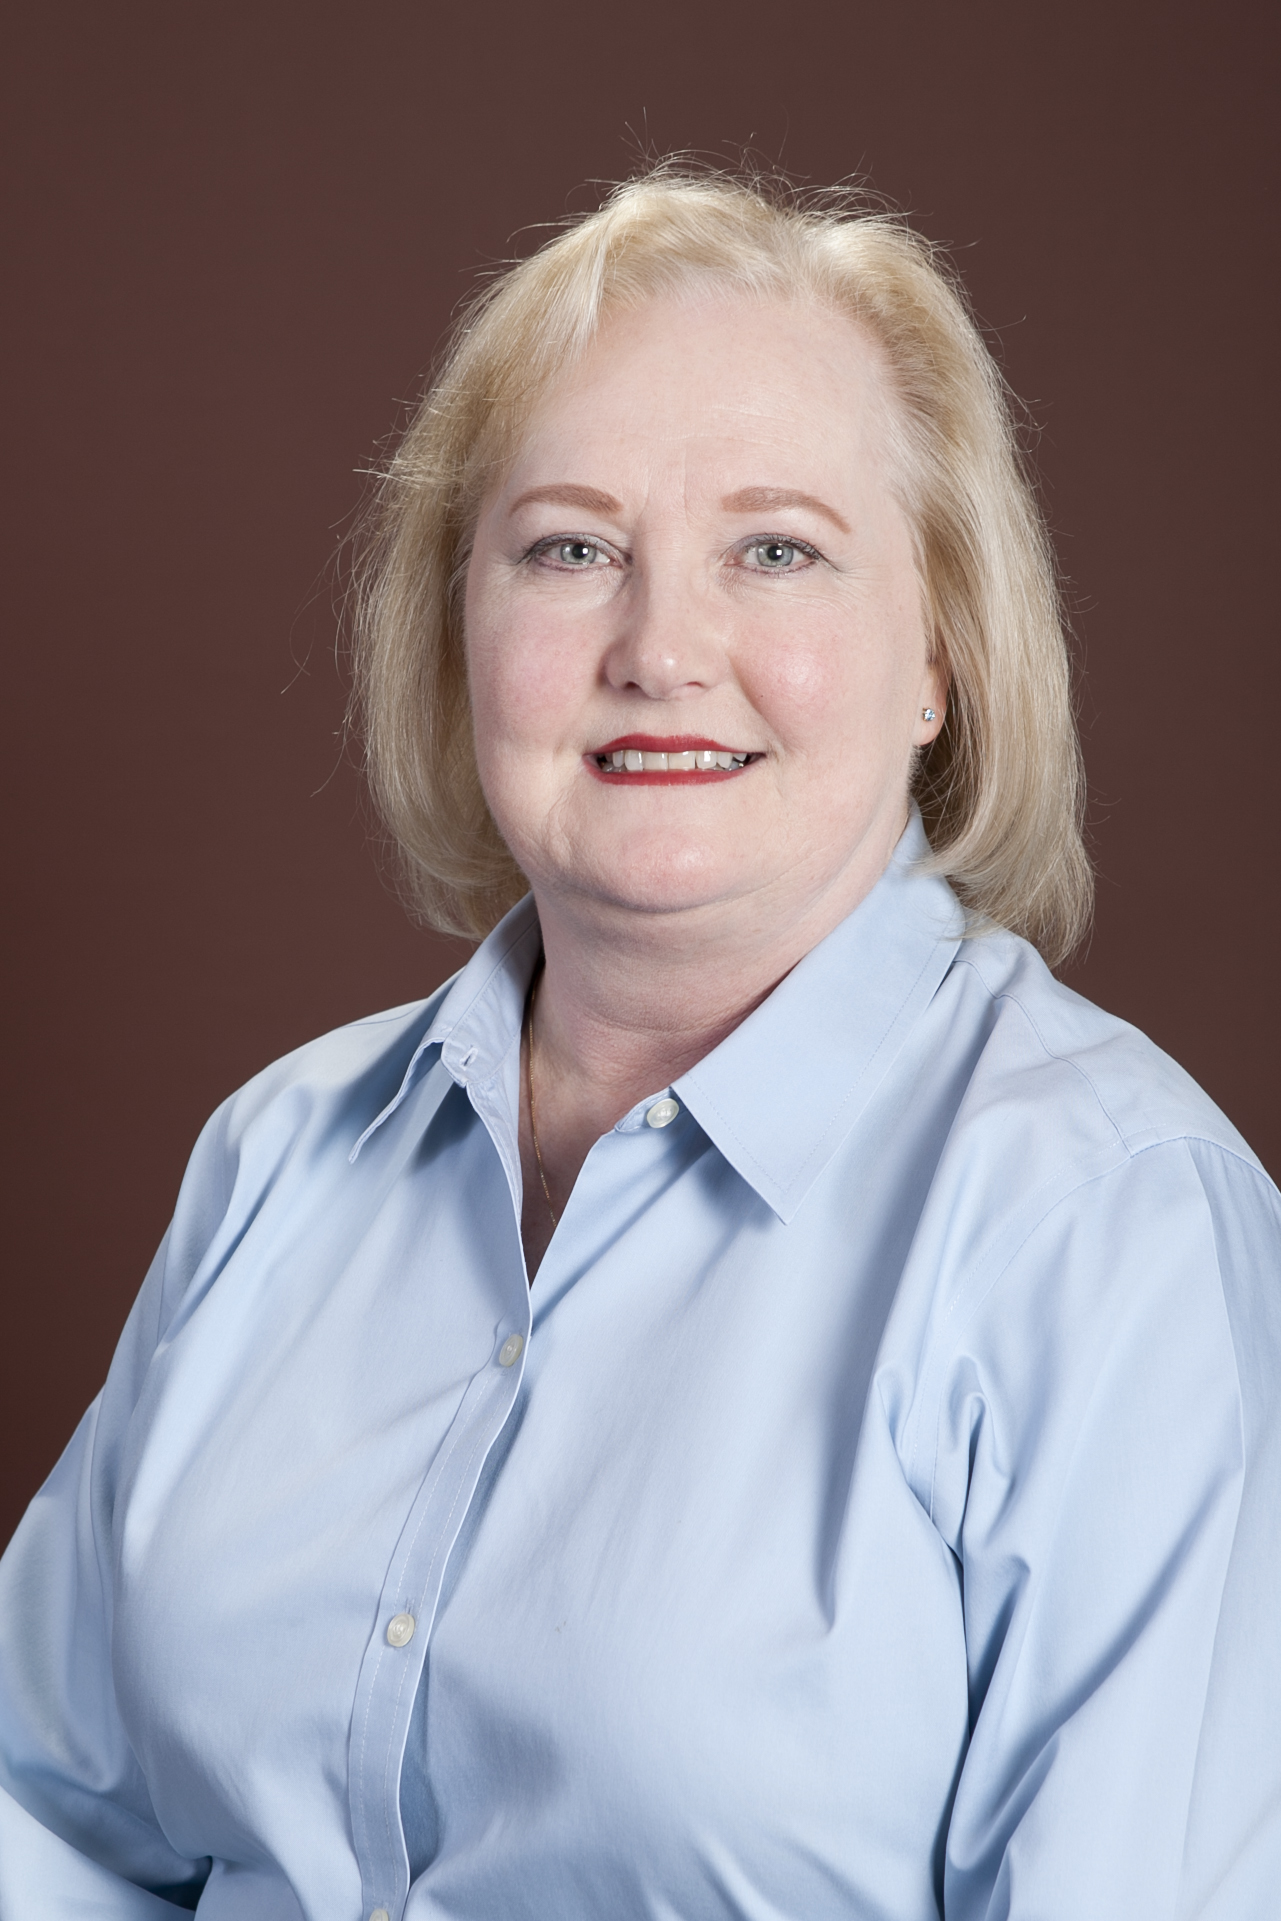 Dianne Vaughan - Administrative Support for the Vice President's Office